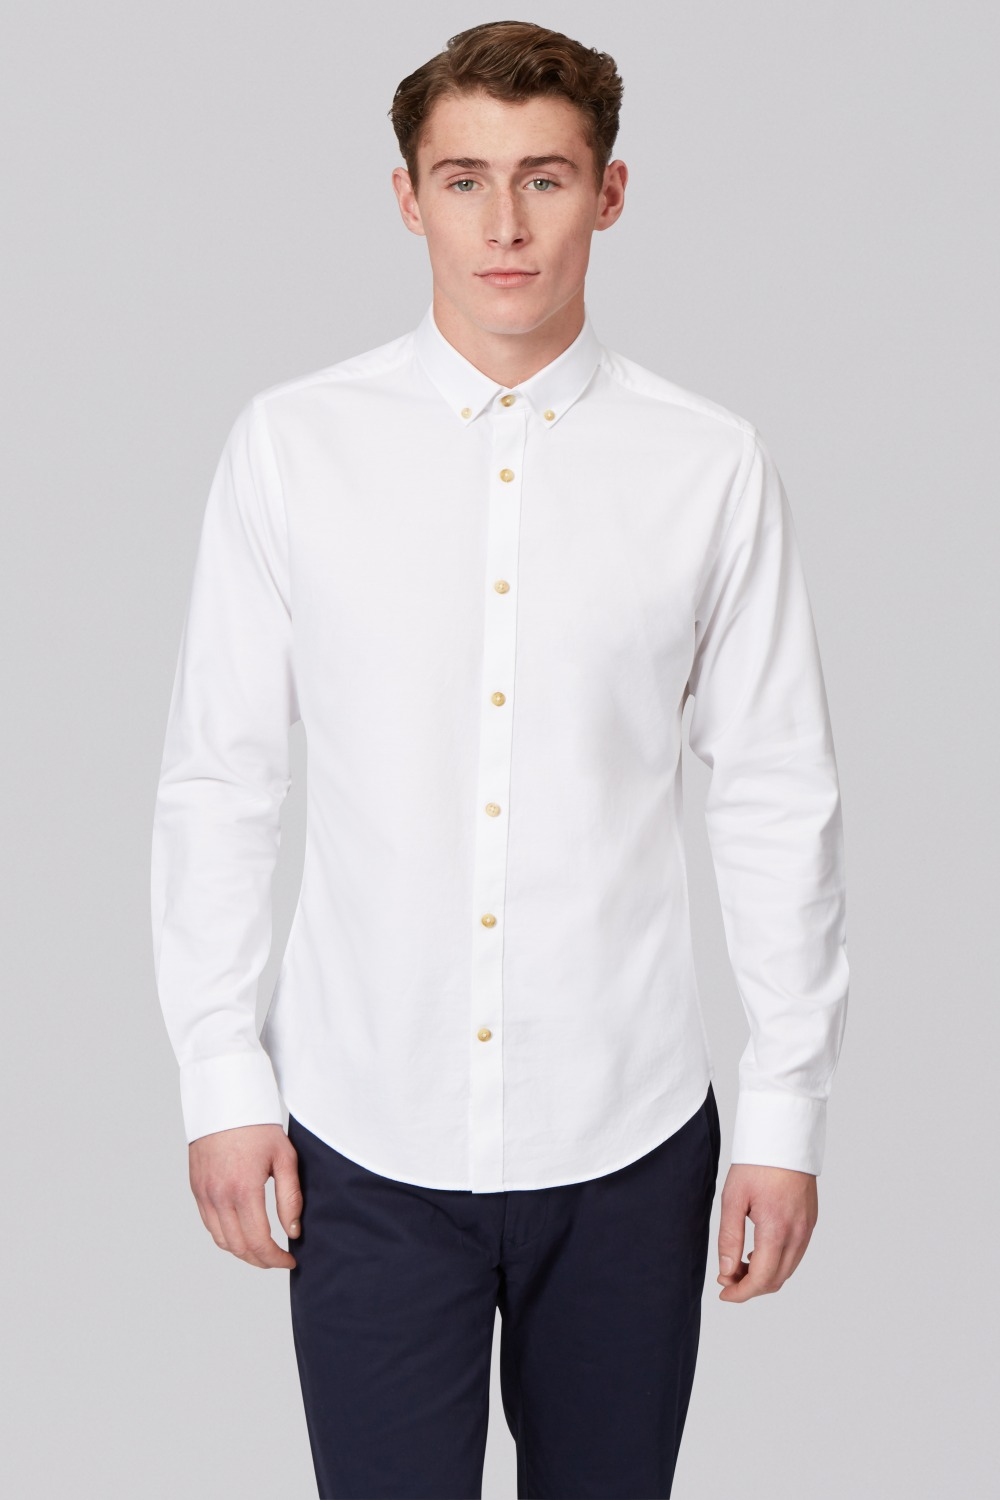 Mens White Oxford Button Down Shirt